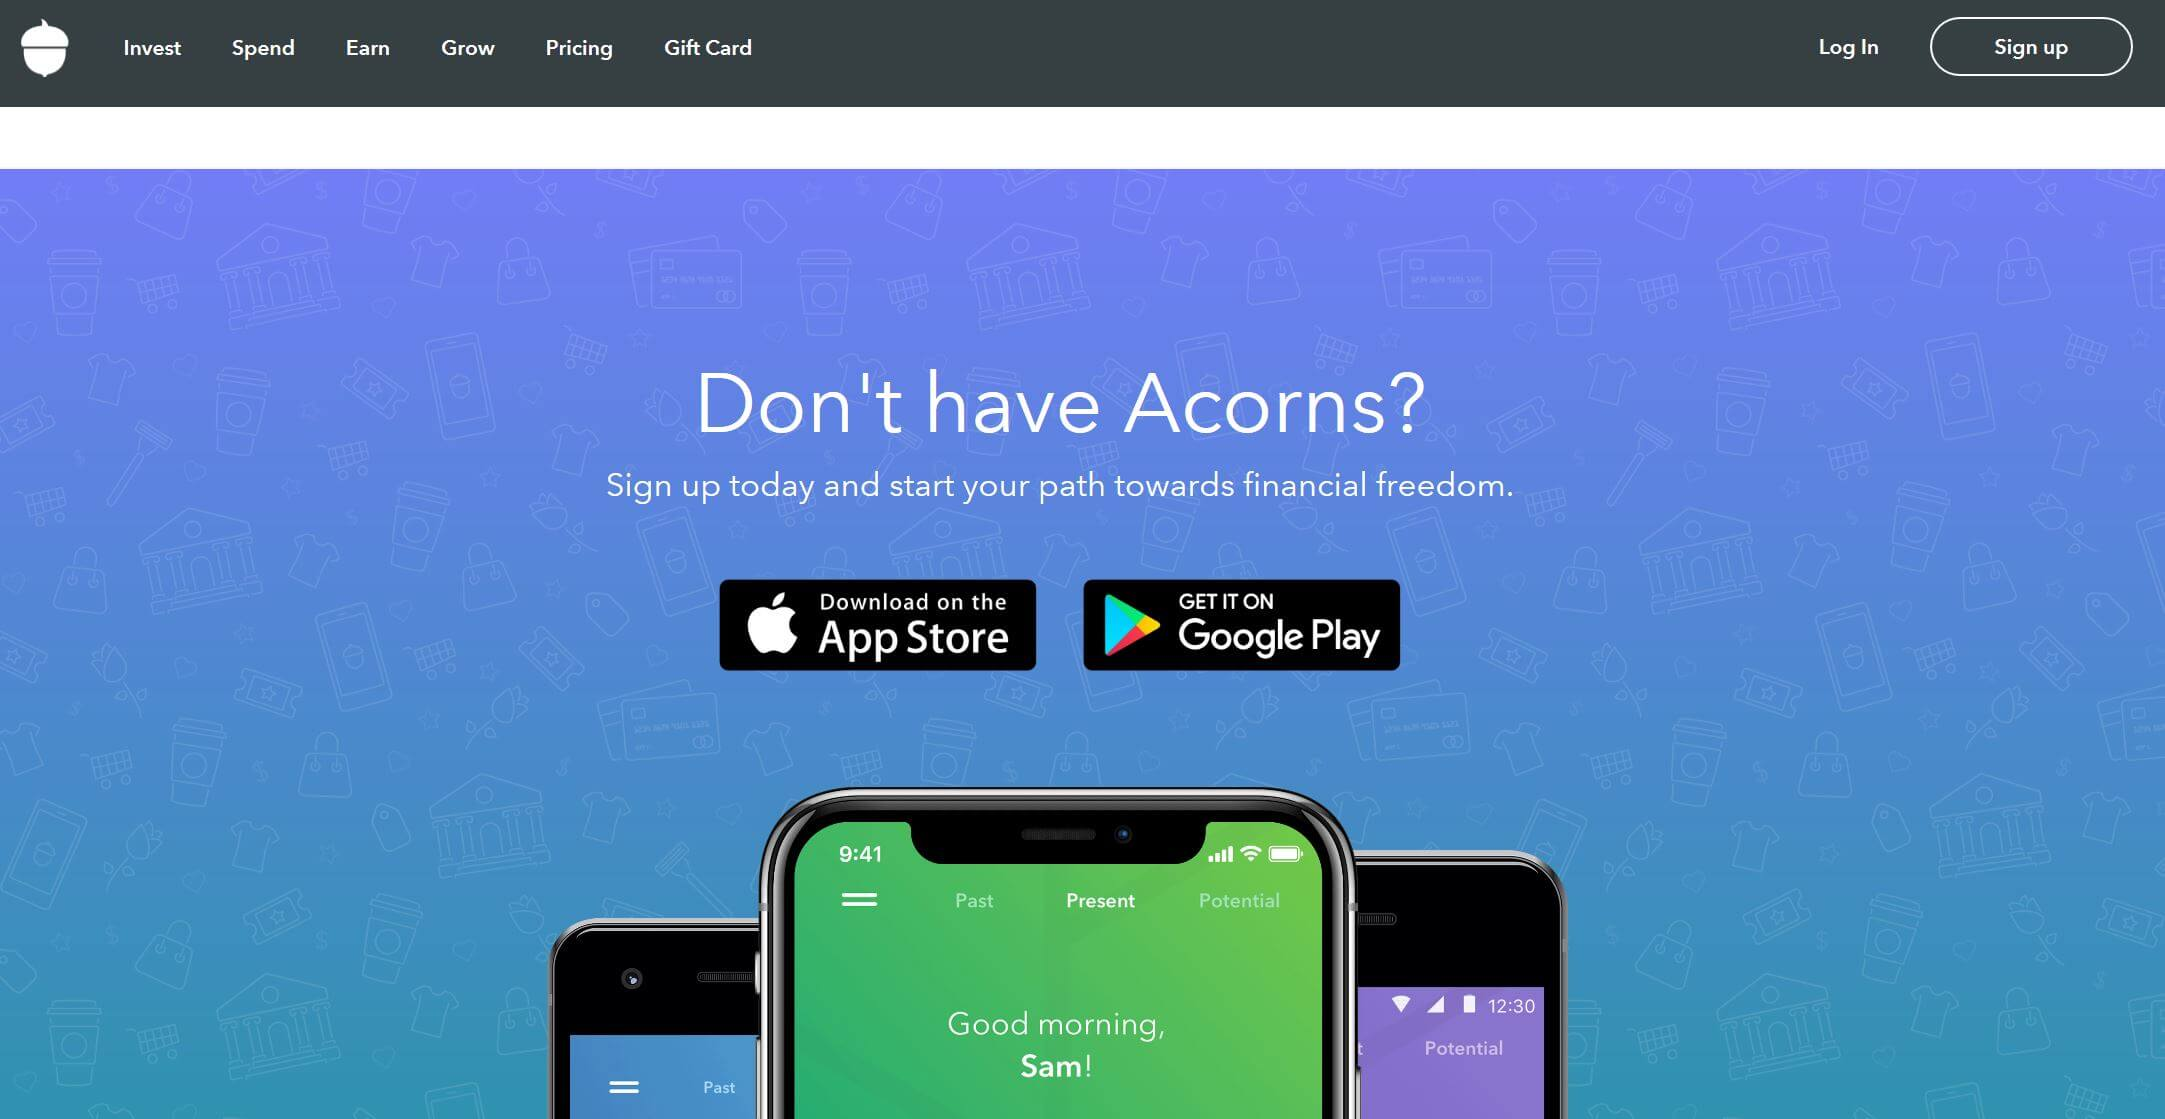 Acorns on Google Play and on the Apple AppStore